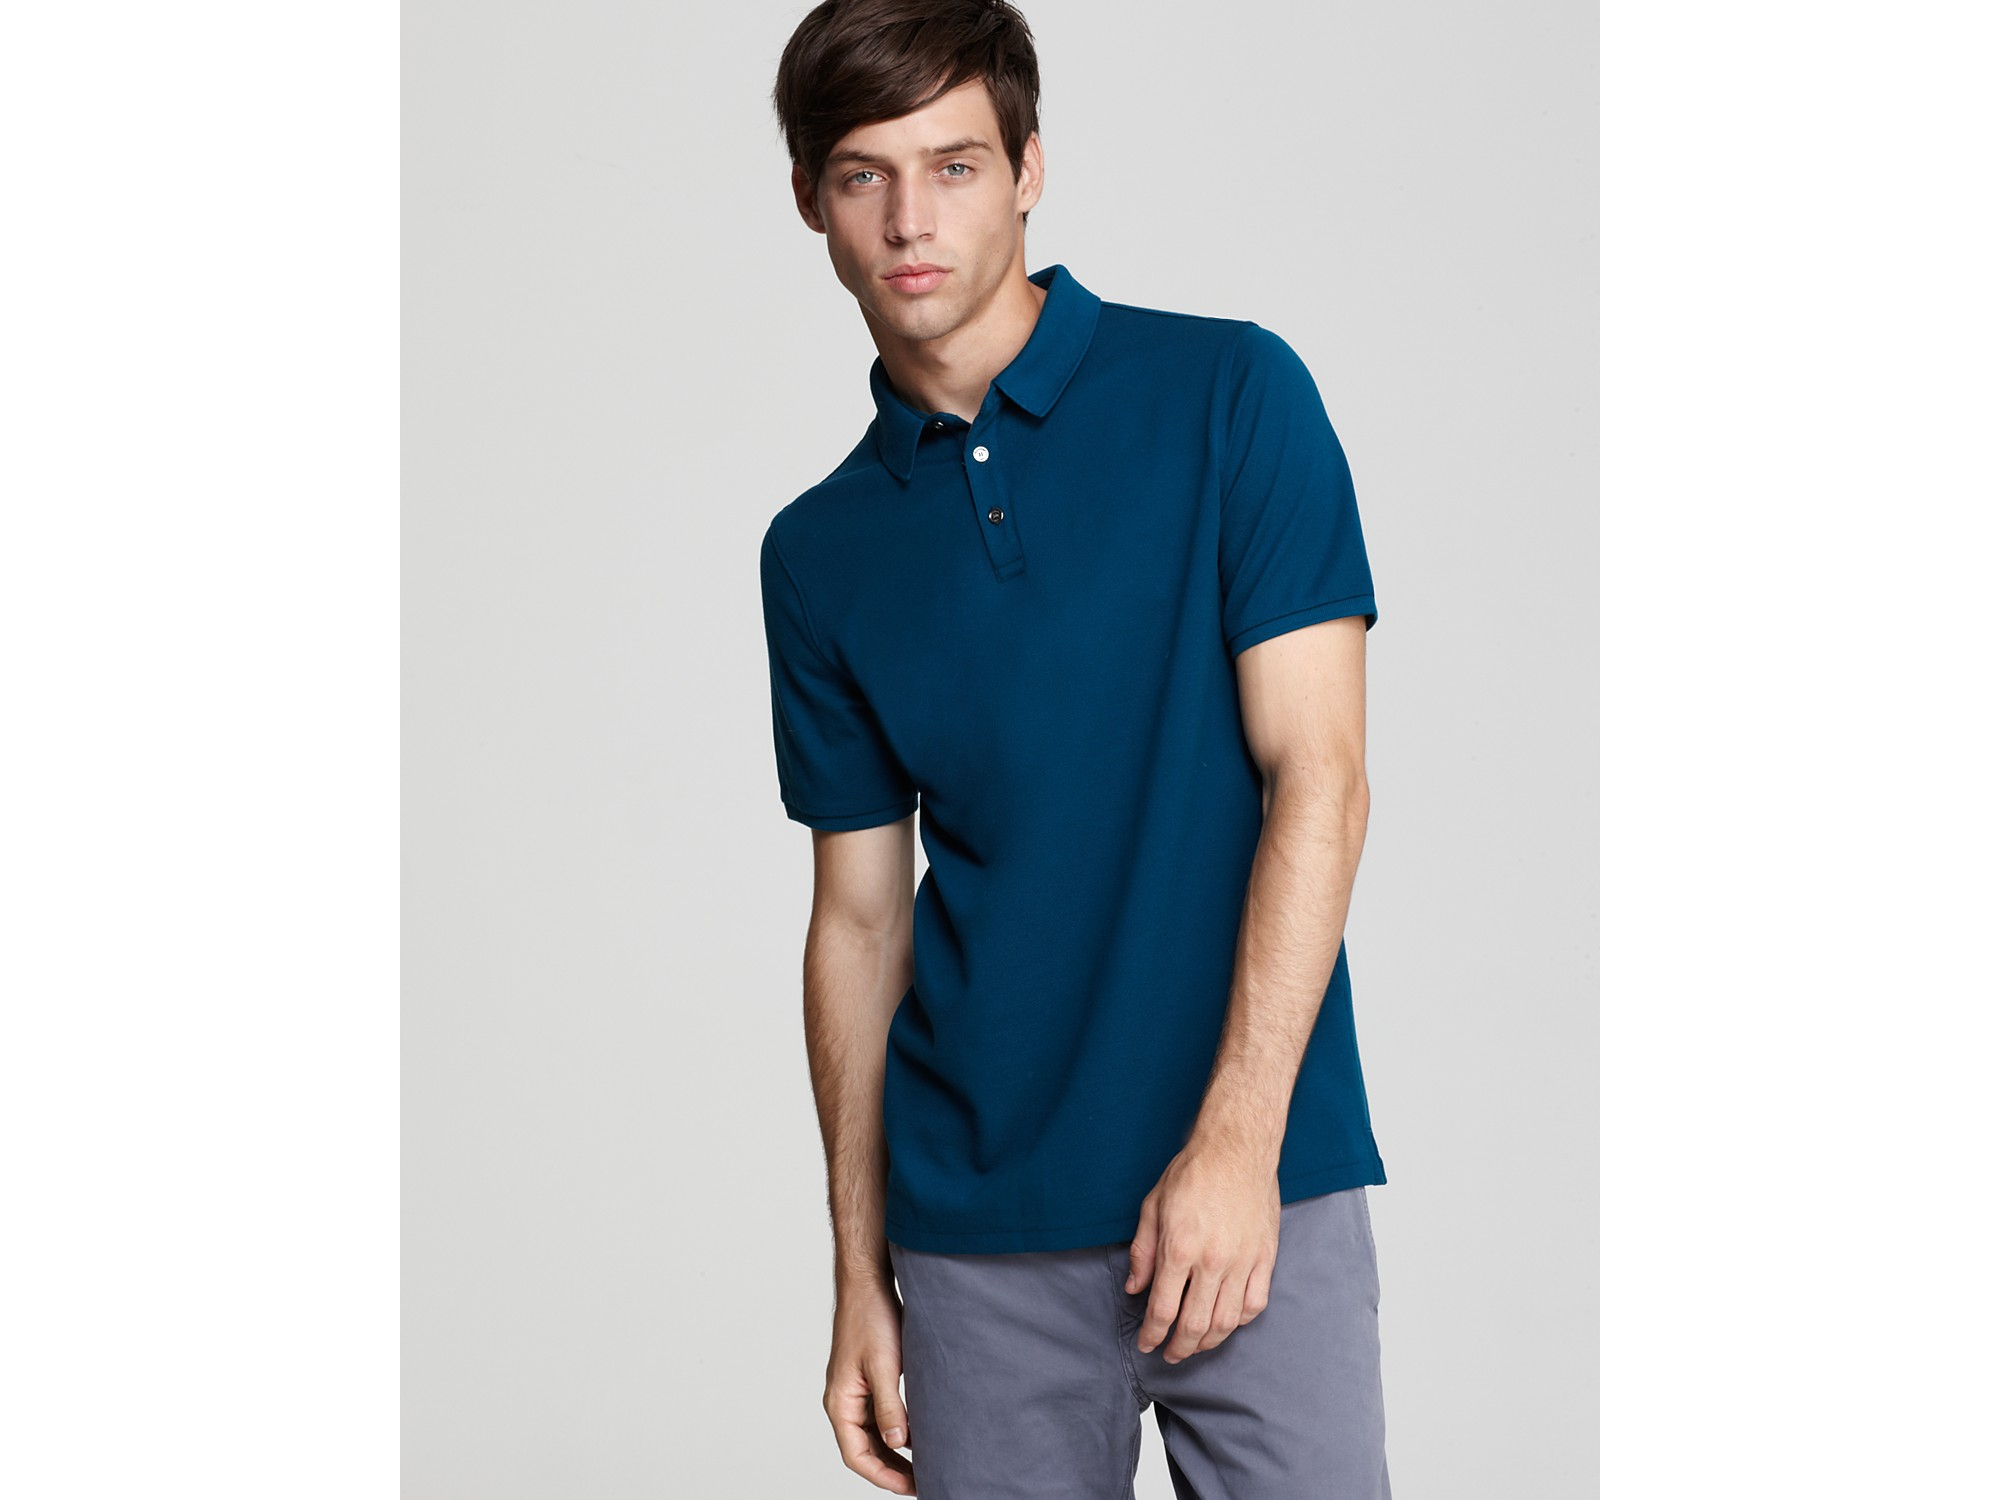 Navy Blue Burberry Polo Shirt Chad Crowley Productions